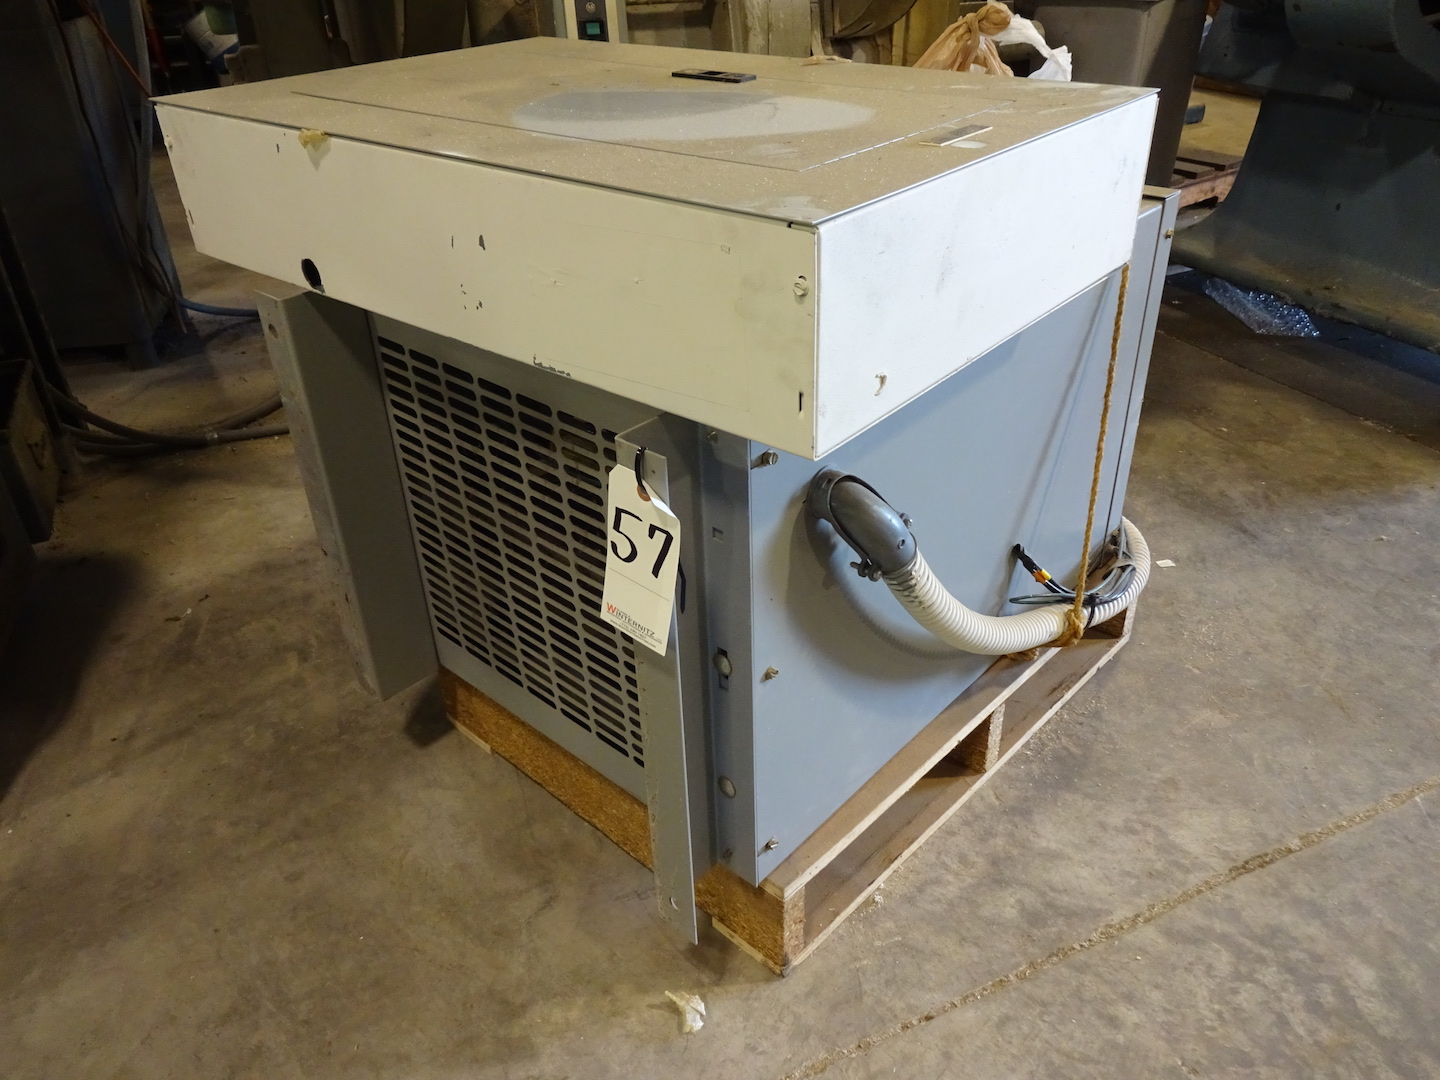 Lot 57 - Federal Pacific 30 KVA, 480 Volt Primary, 208Y/120X Secondary Transformer